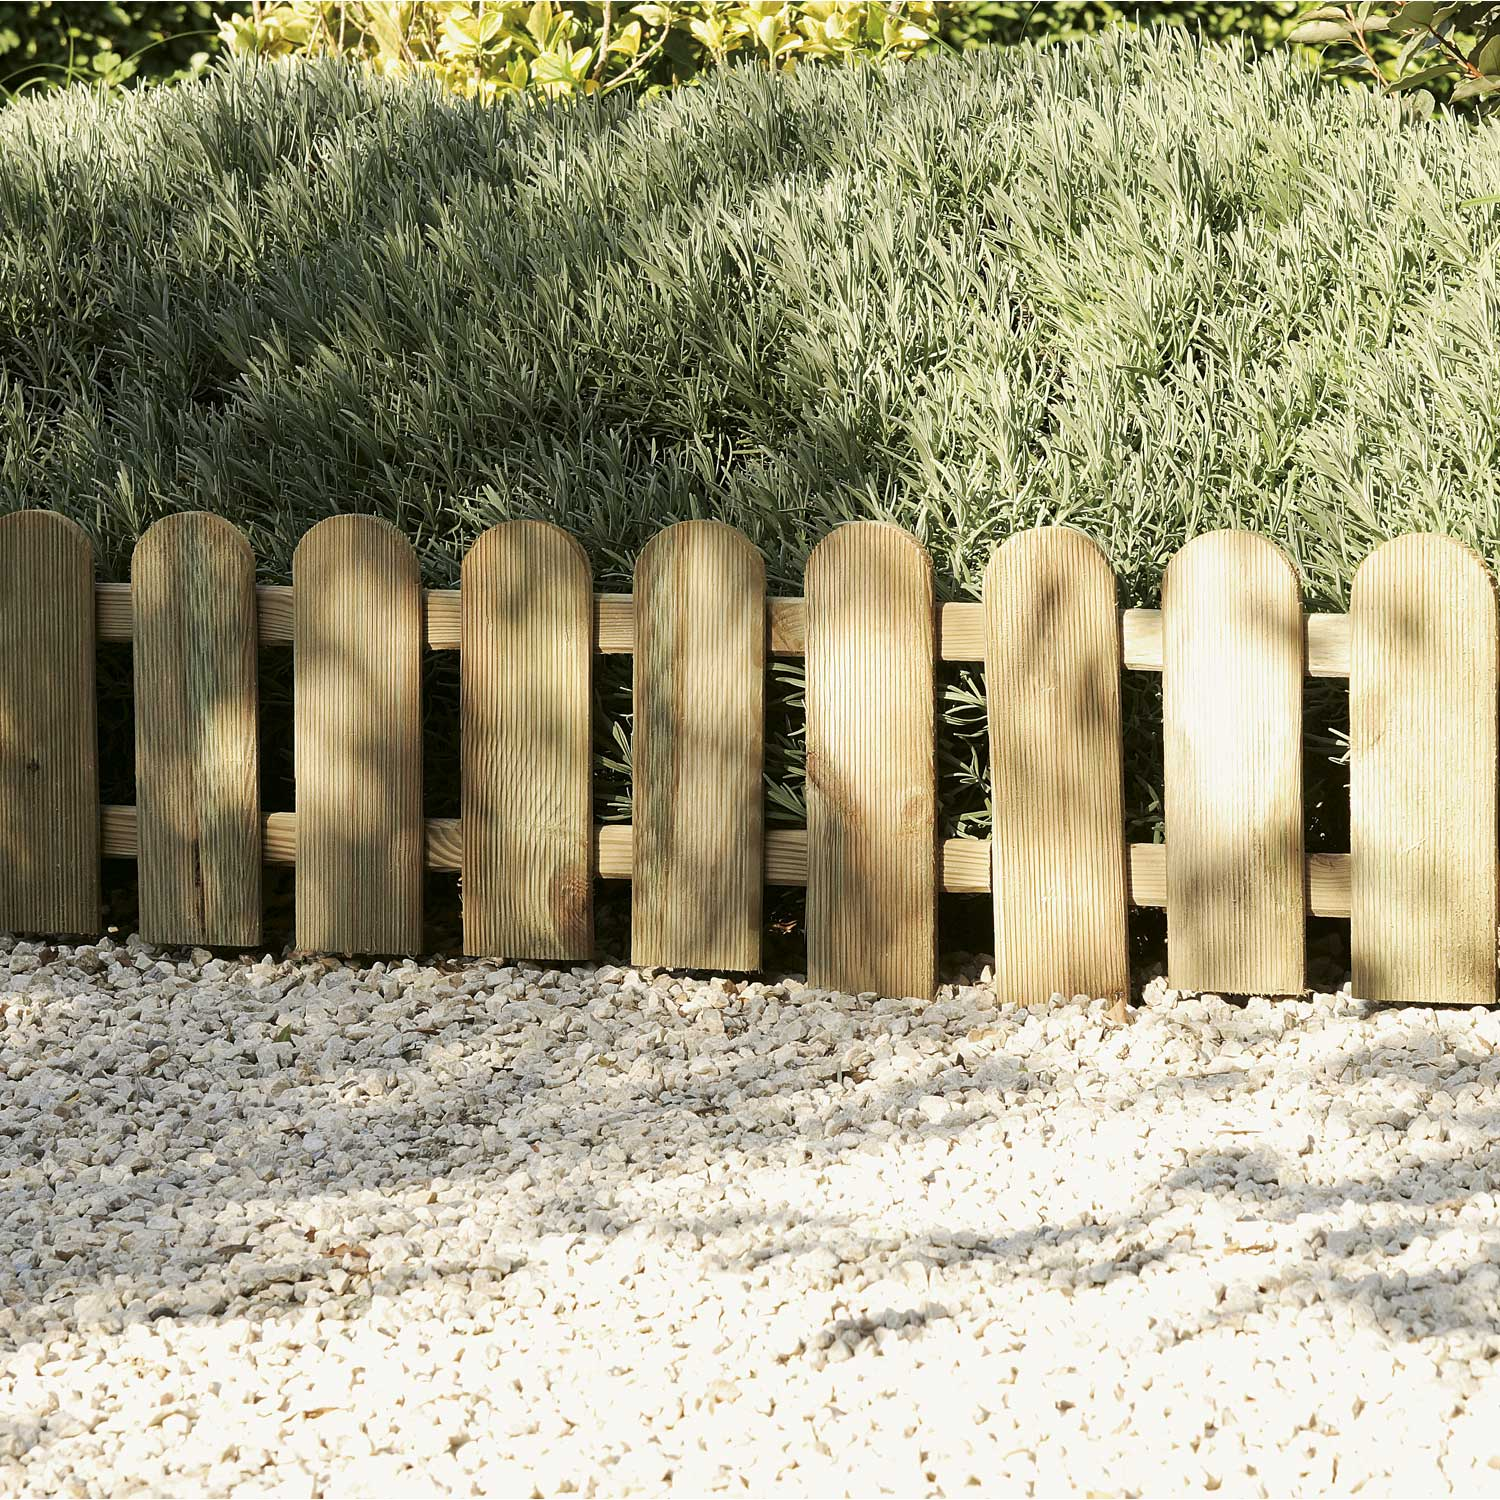 Cl ture grillage rigide pas cher for Bordure en bois de jardin